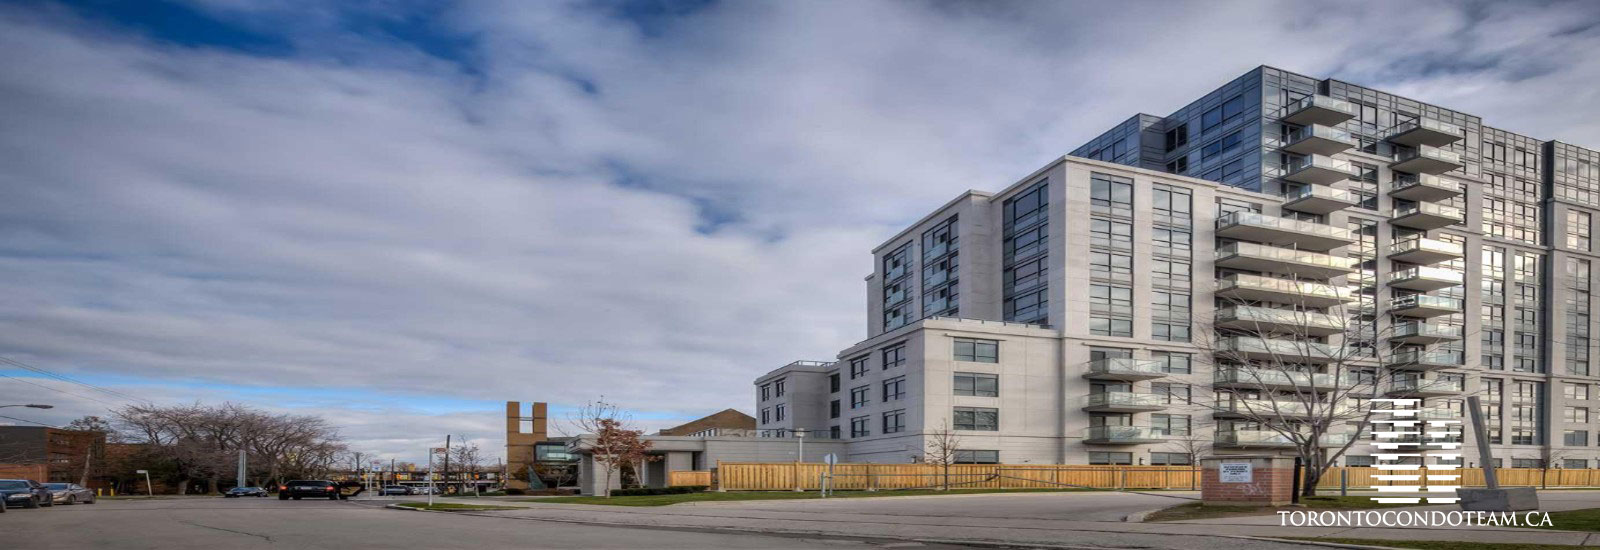 35 Saranac Blvd Condos For Sale